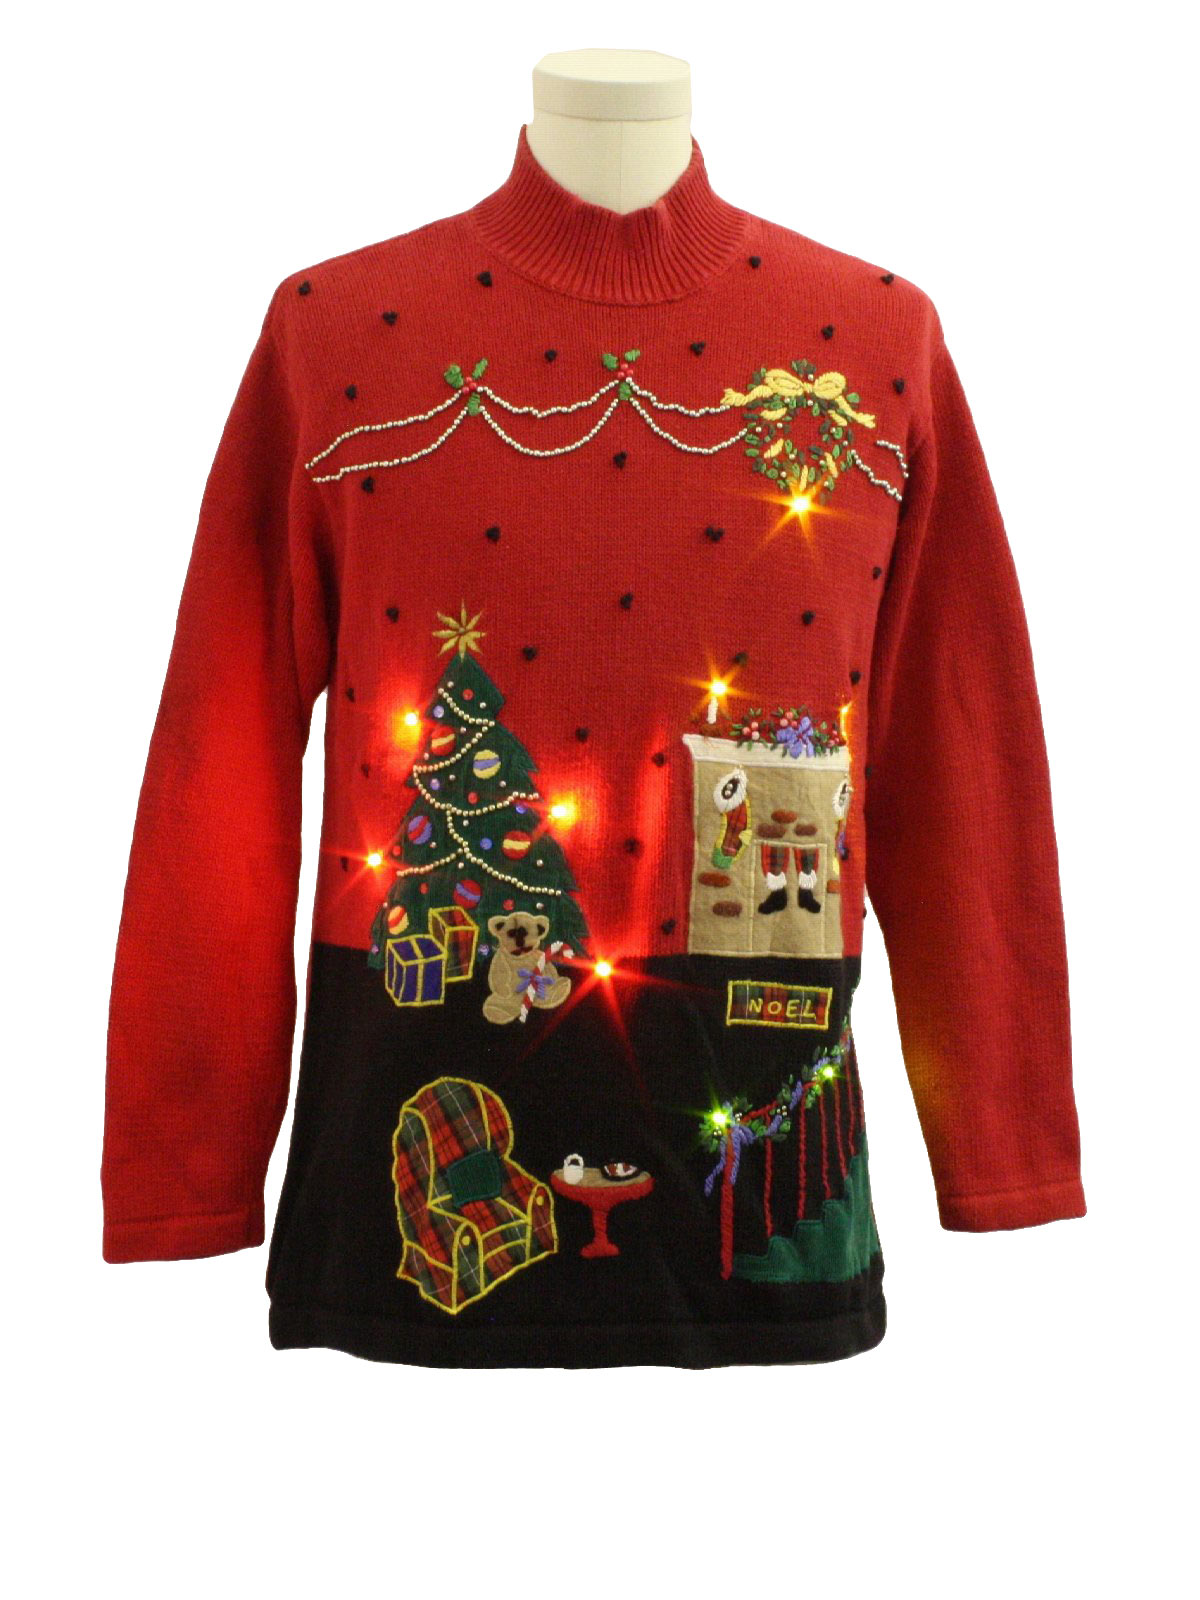 Lightup Ugly Christmas Sweater Missing Label Unisex Red Background Cotton And Ramie Blend